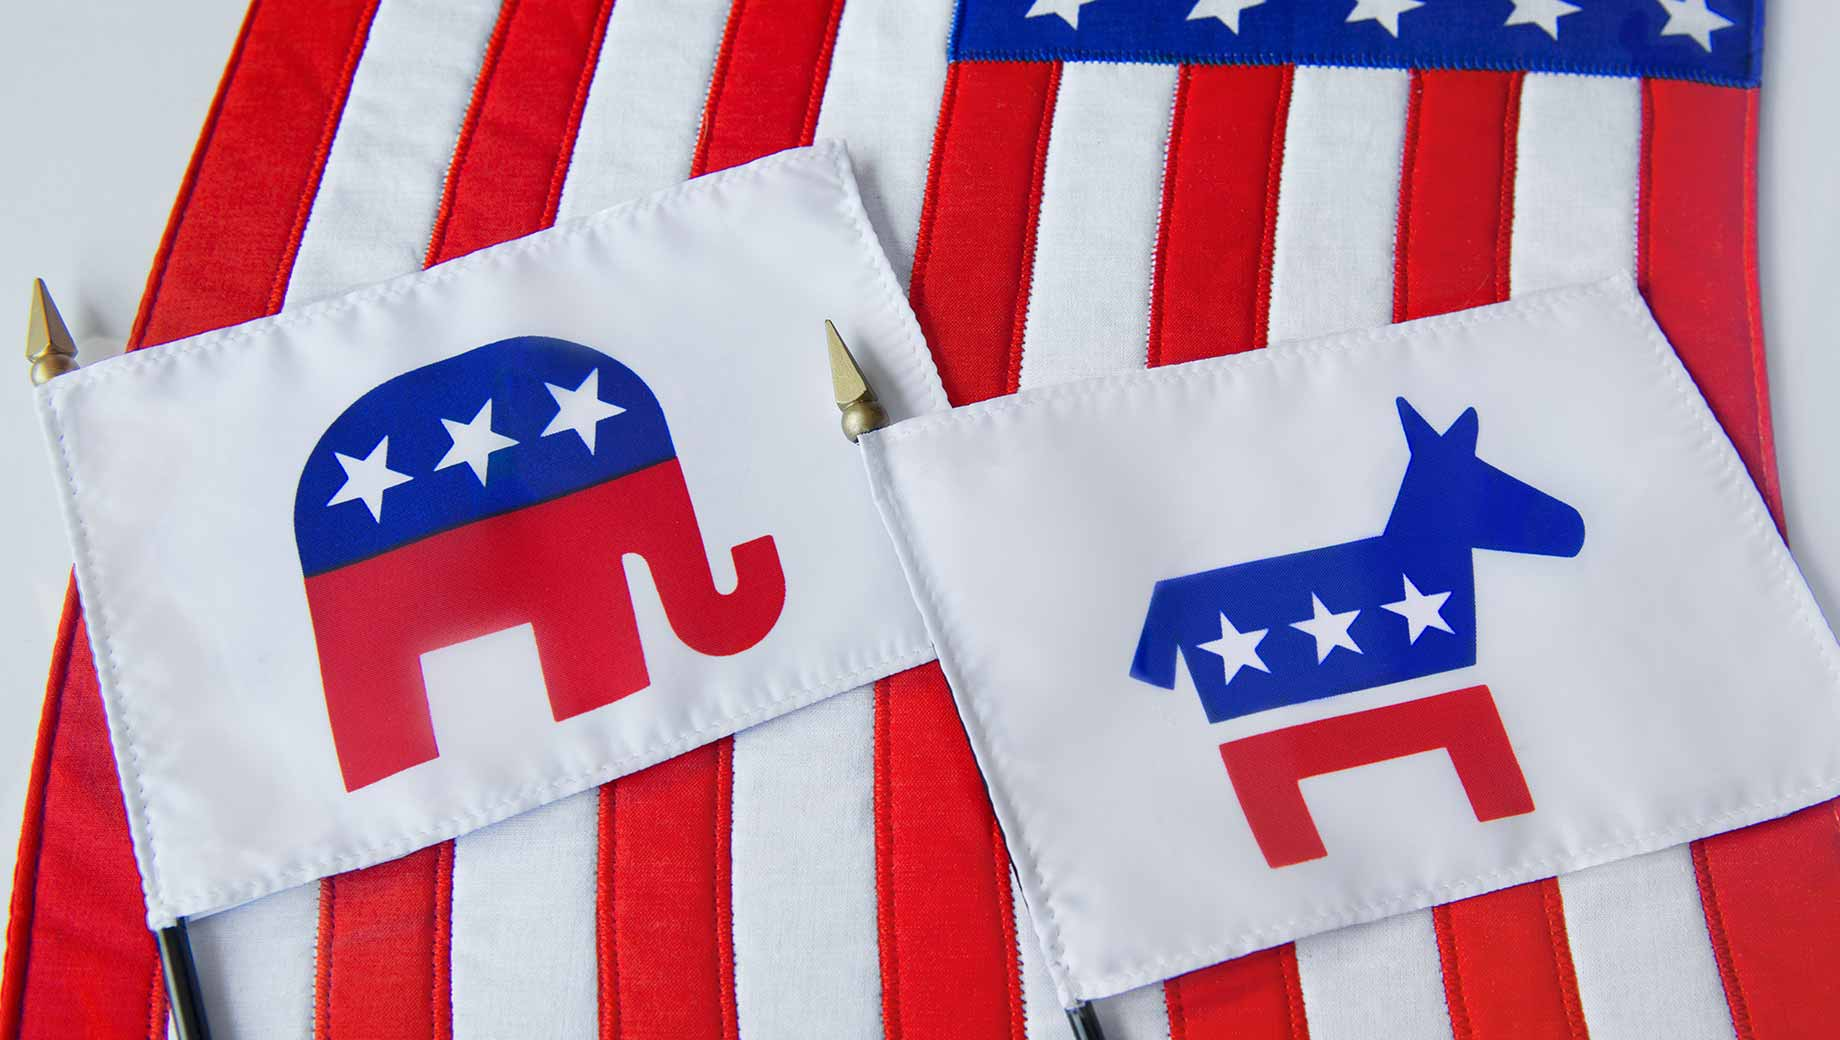 U.S. Party Preferences Have Swung Sharply Toward Democrats